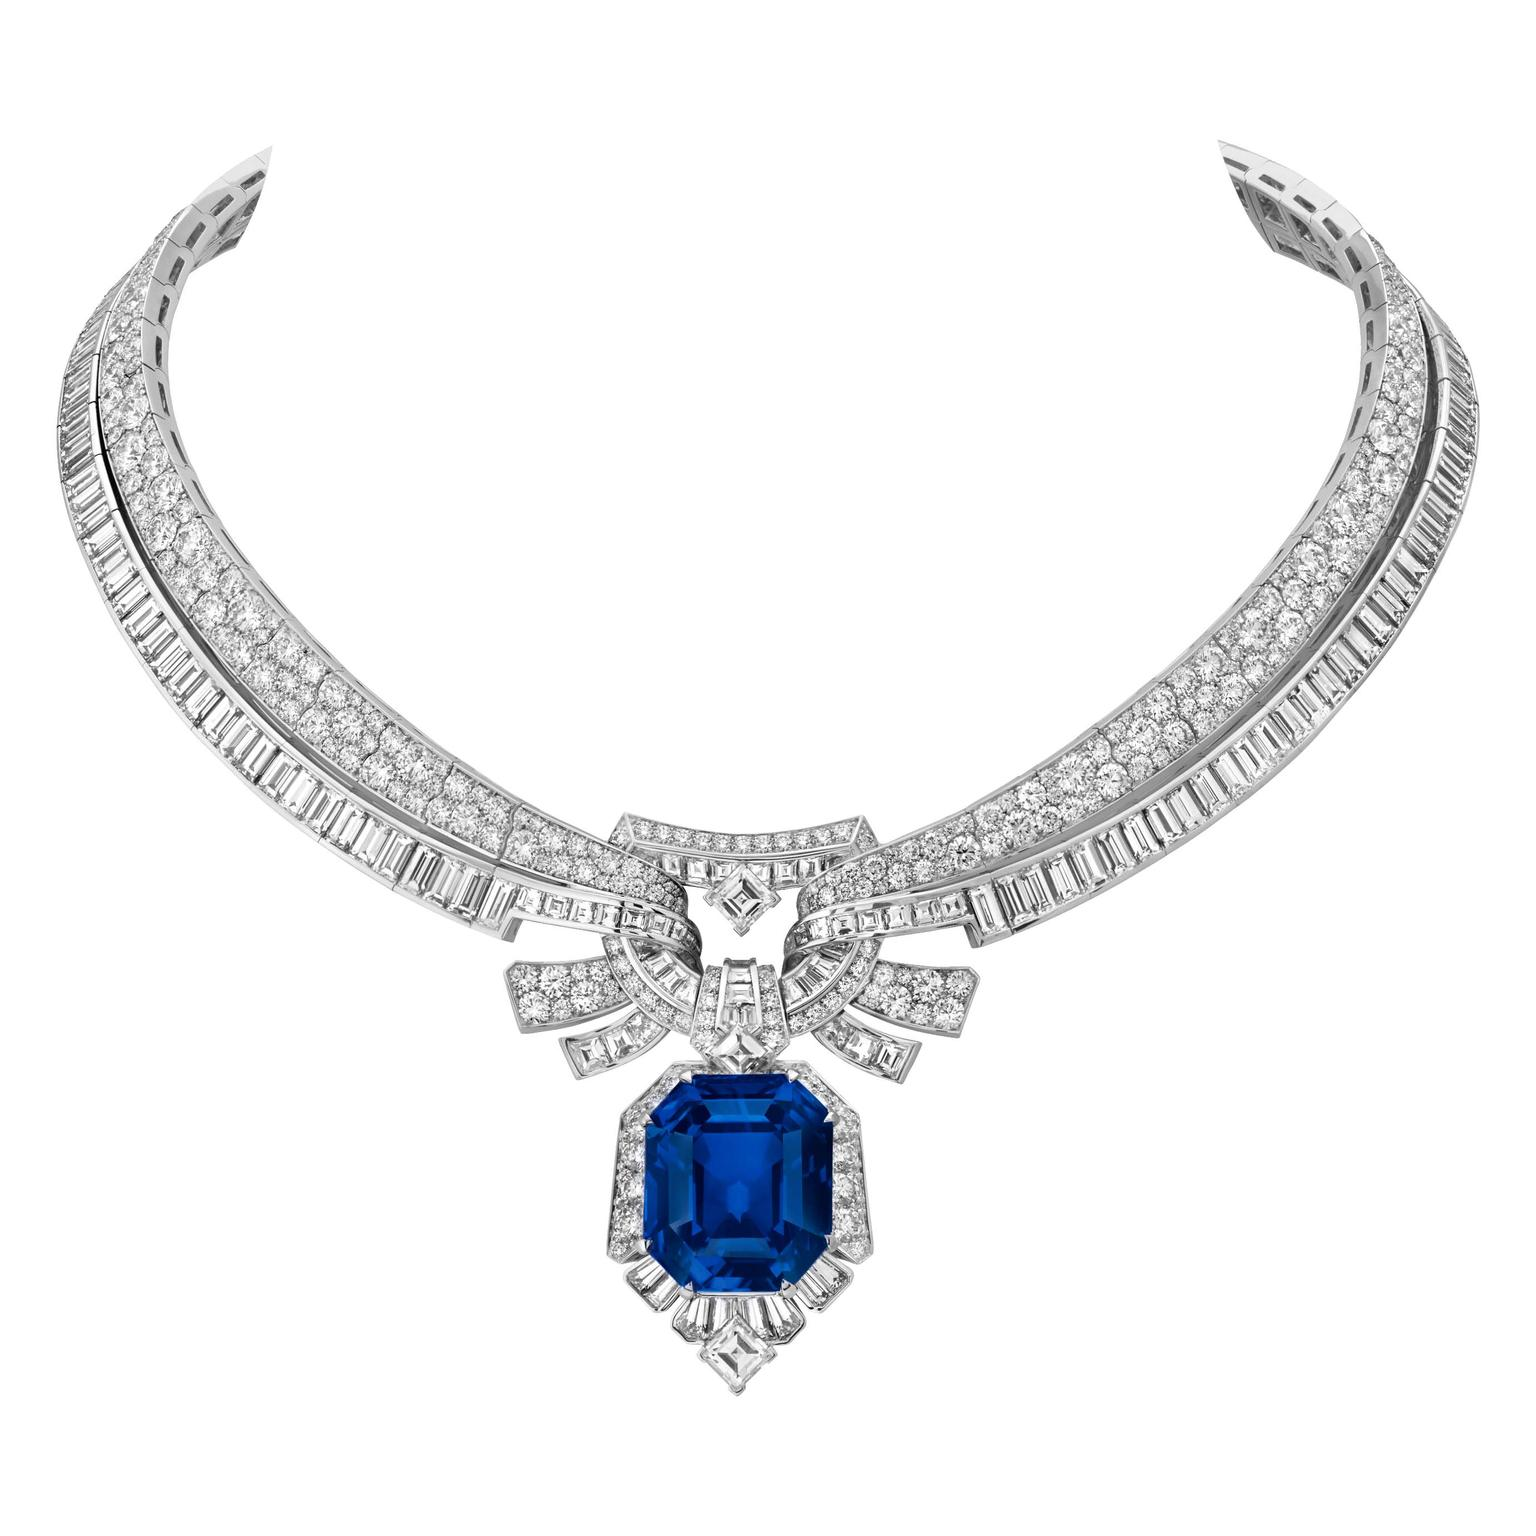 The Jewellery Editor Van Cleef & Arpels Maiolica necklace Romeo and Juliet